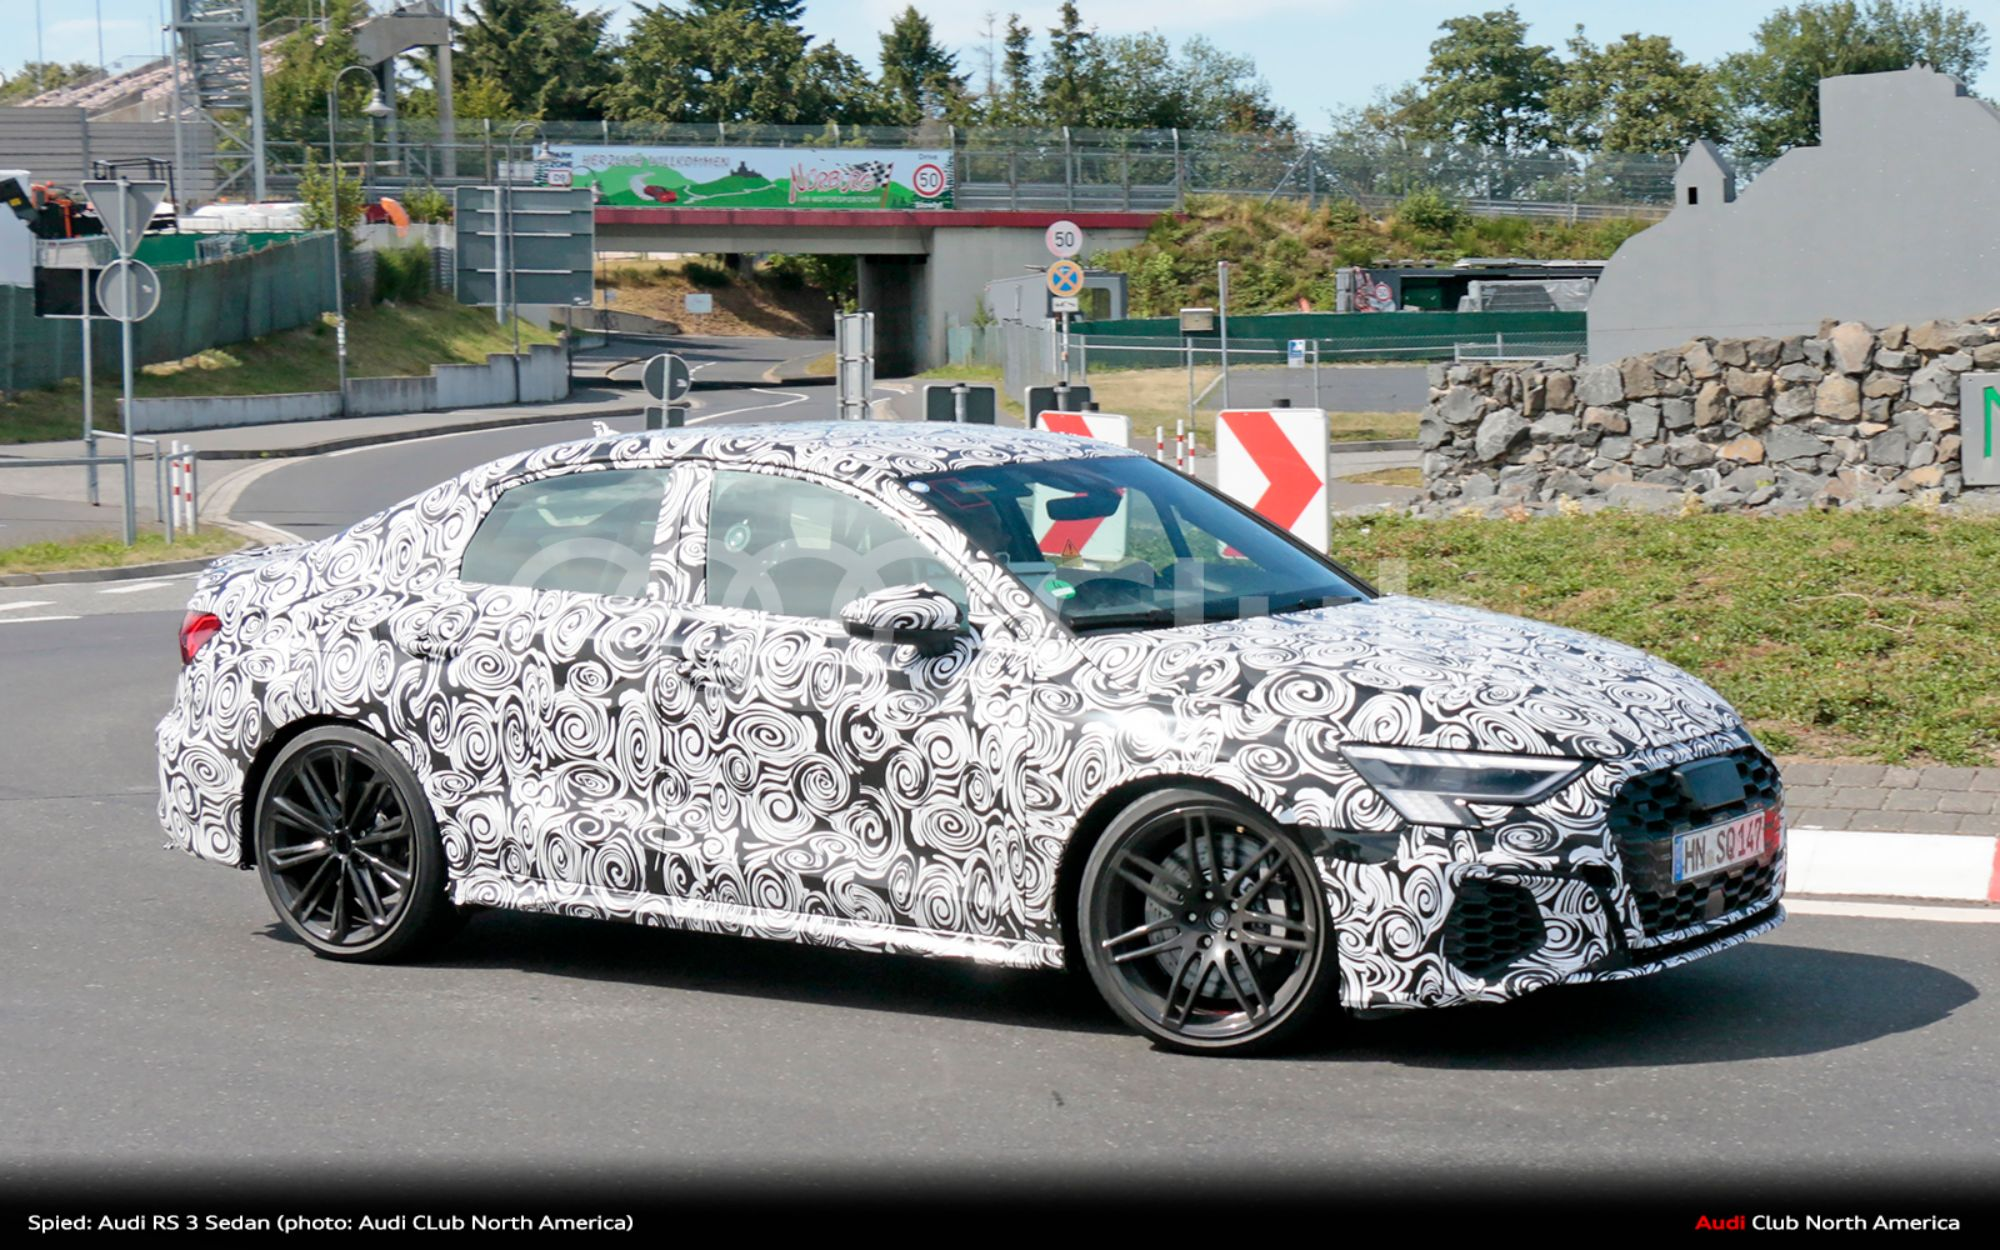 Spied: Audi RS 3 Sedan